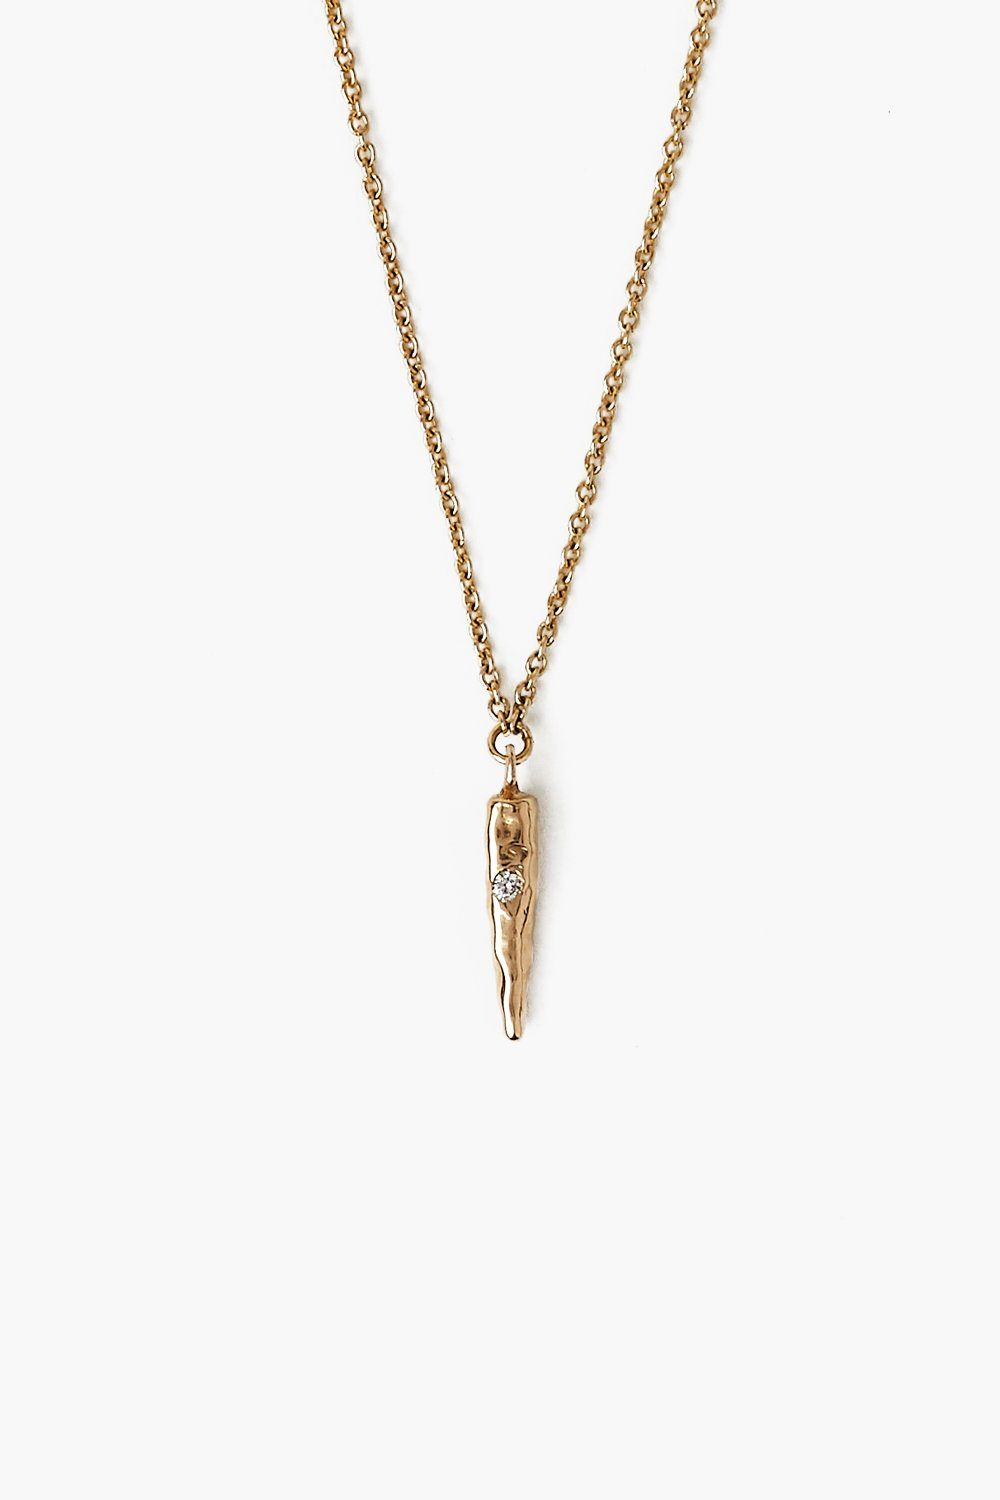 14k Gold Modern Bar and Diamond Necklace